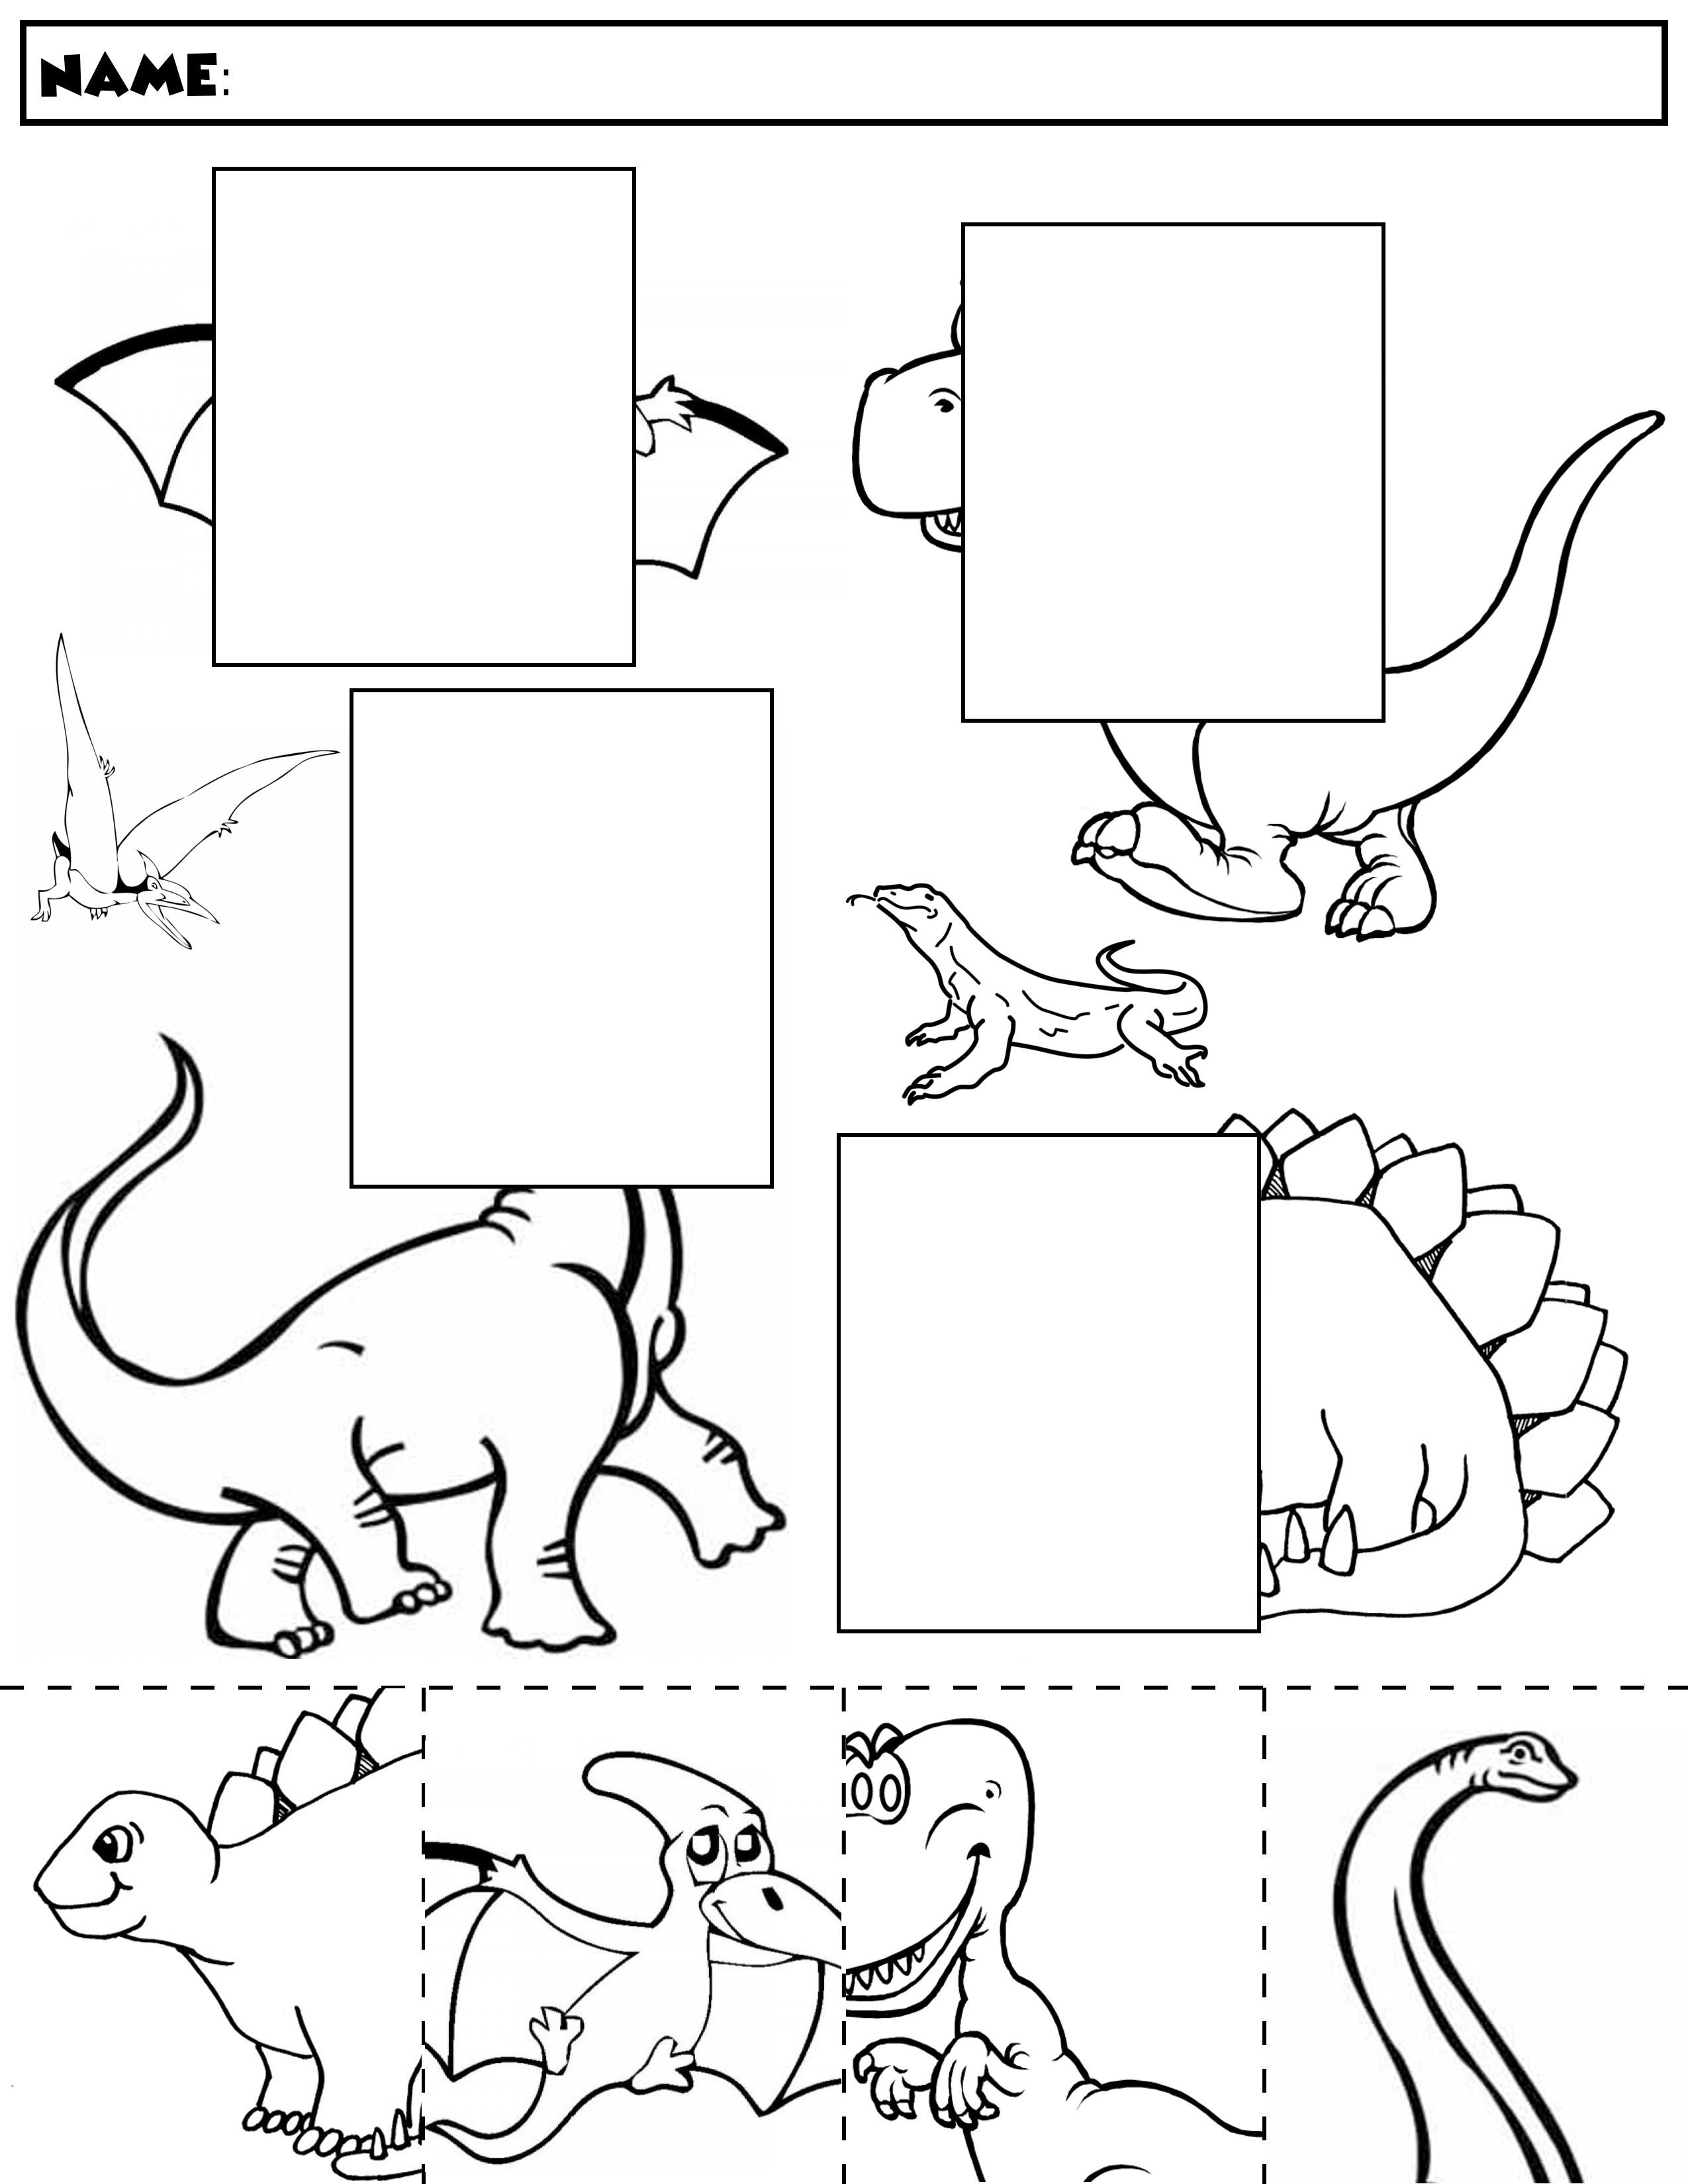 4 Worksheets Dinosaur Connect The Dots Dinosaur Color And